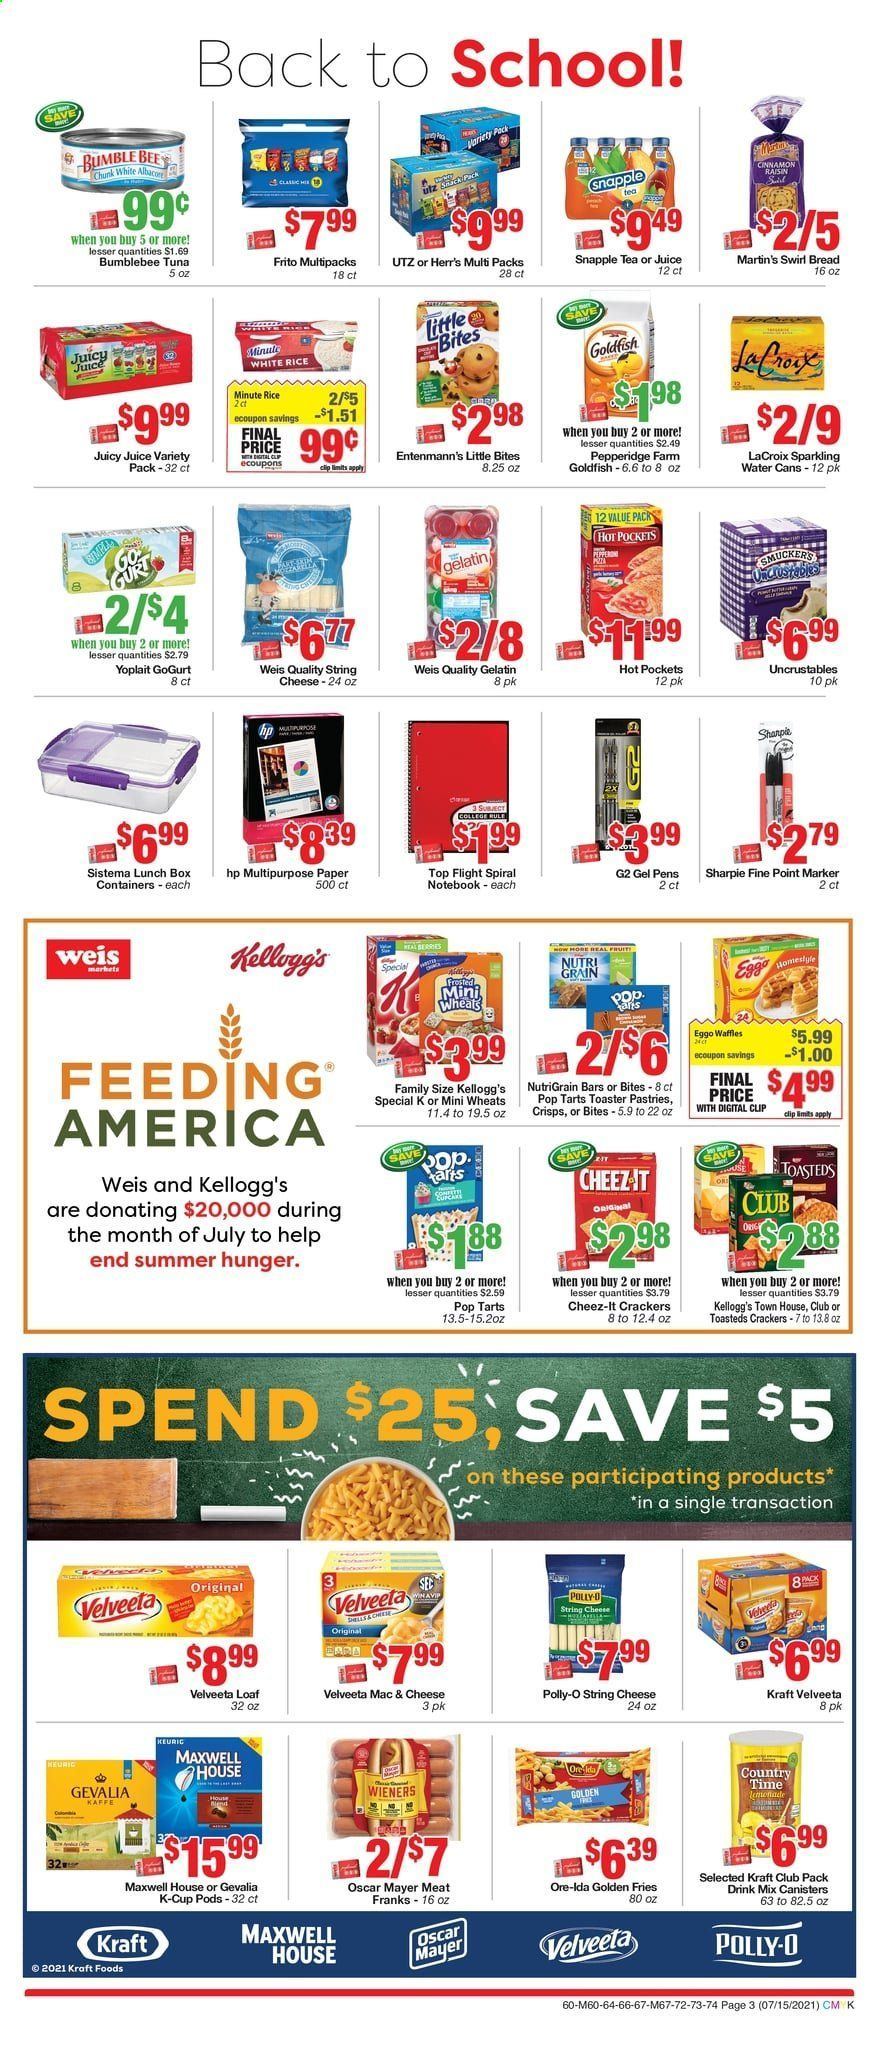 Weis Markets Ad from july 15 to august 19 2021 - Page 3